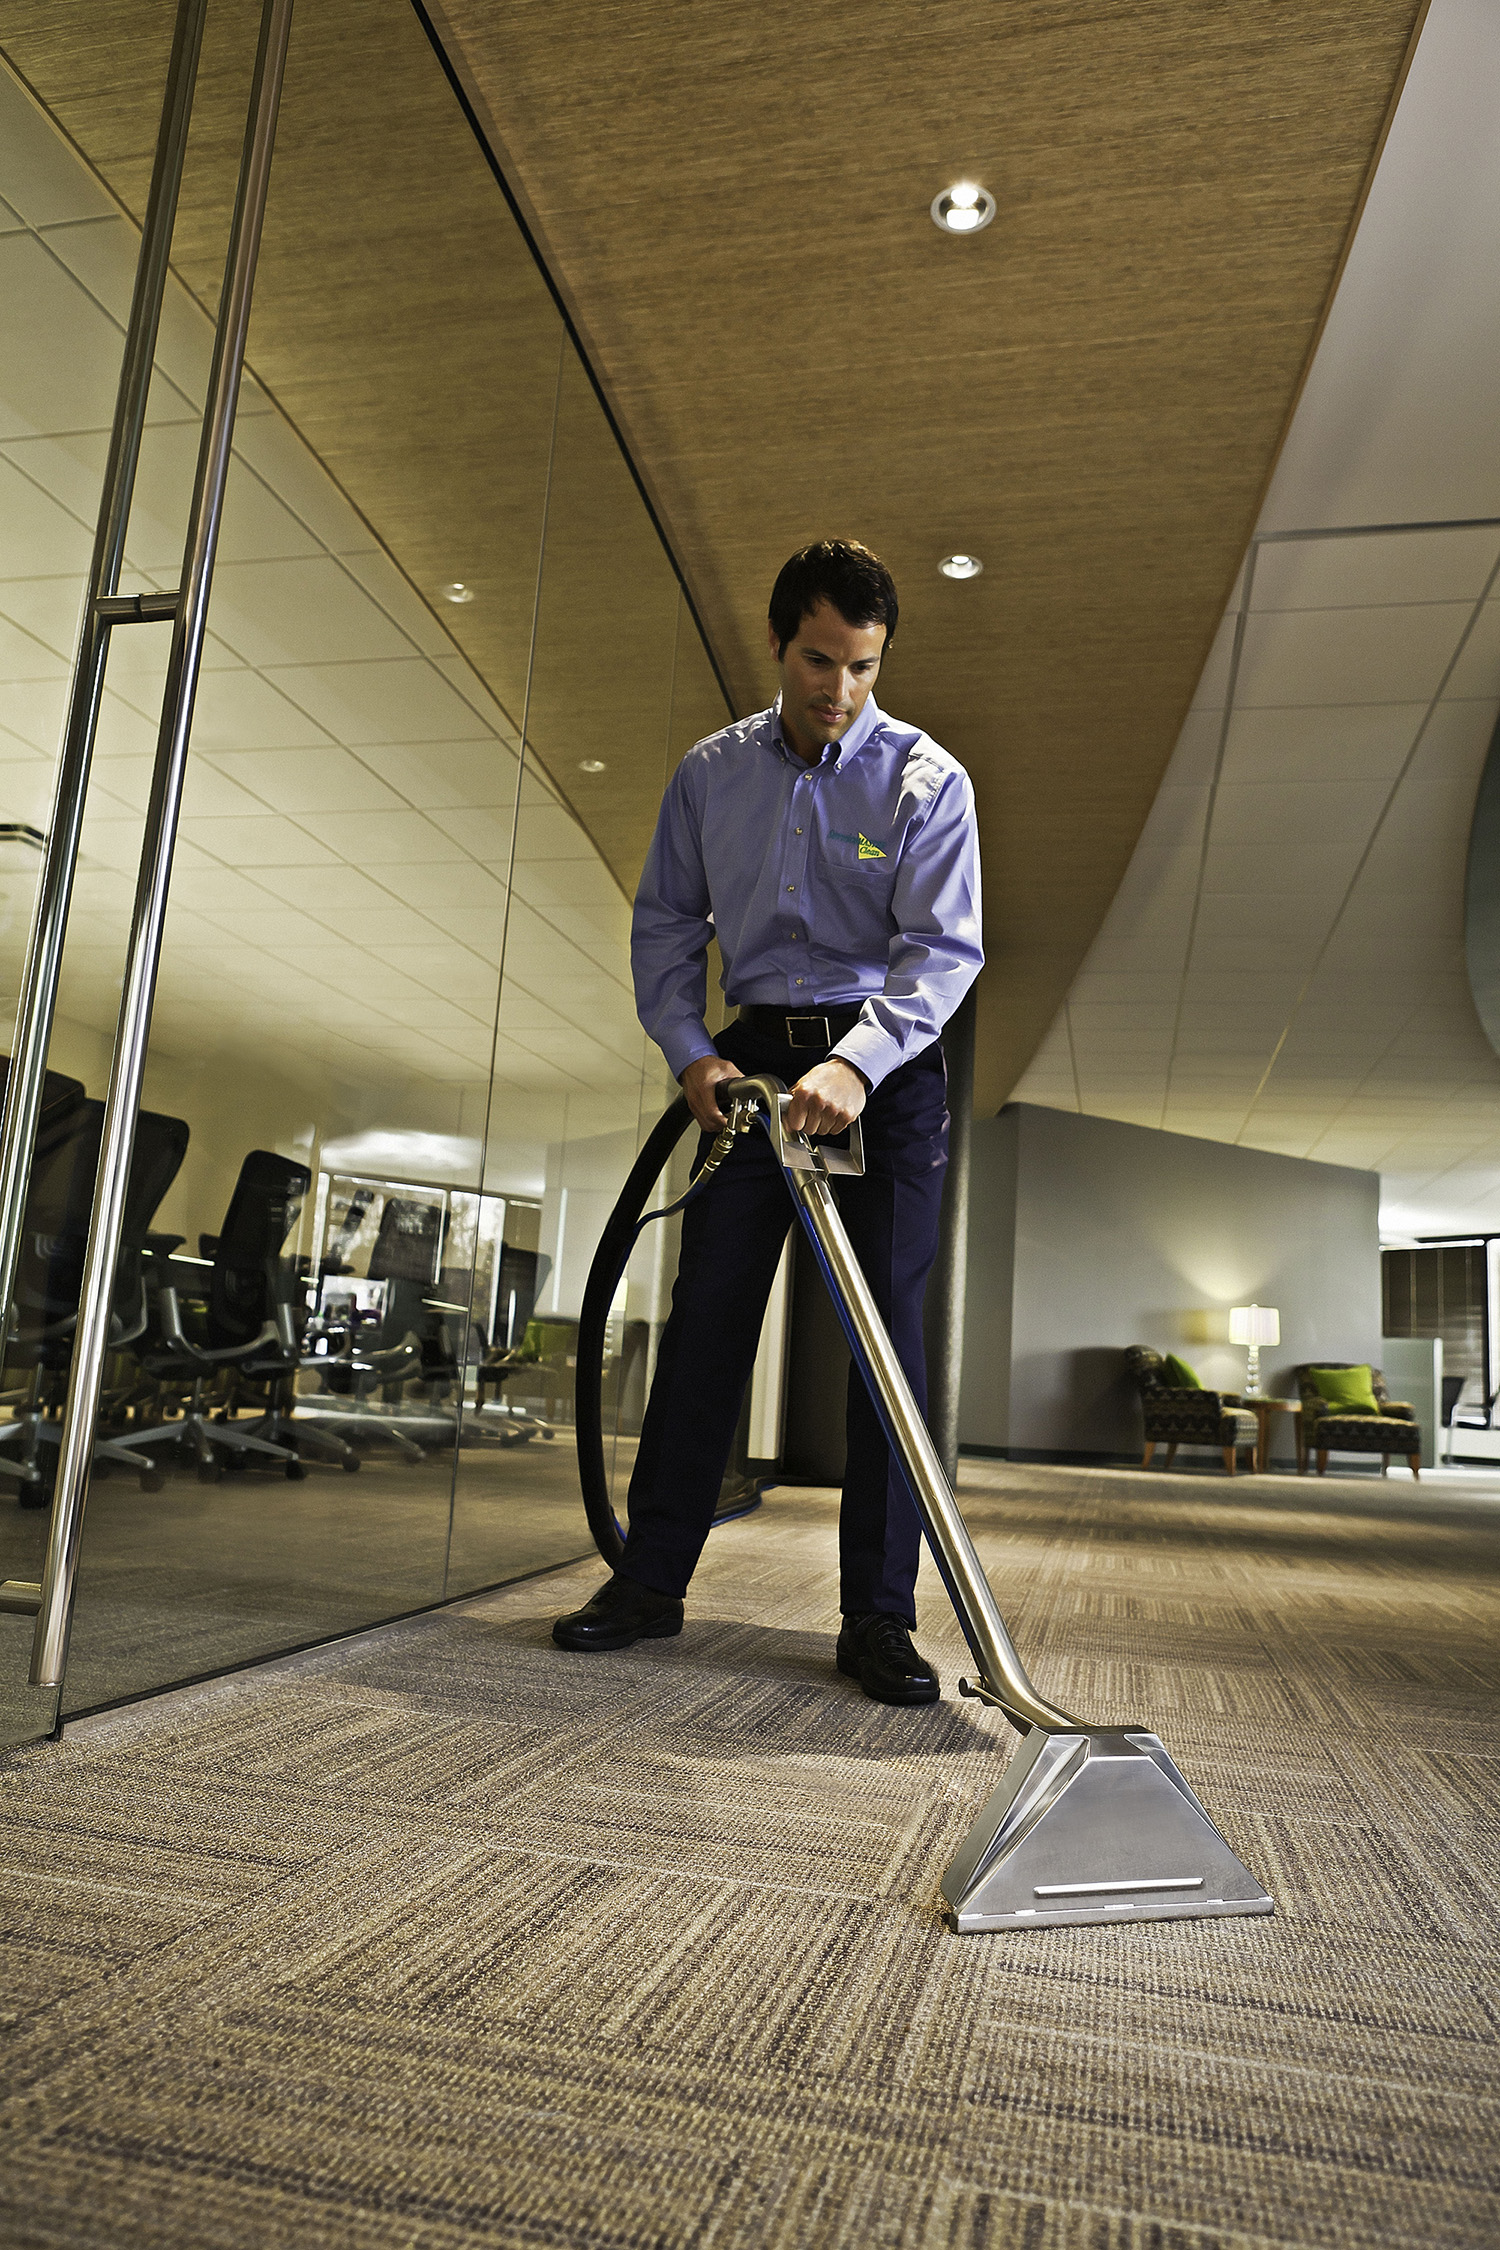 Commercial Carpet cleaning in Modesta, CA